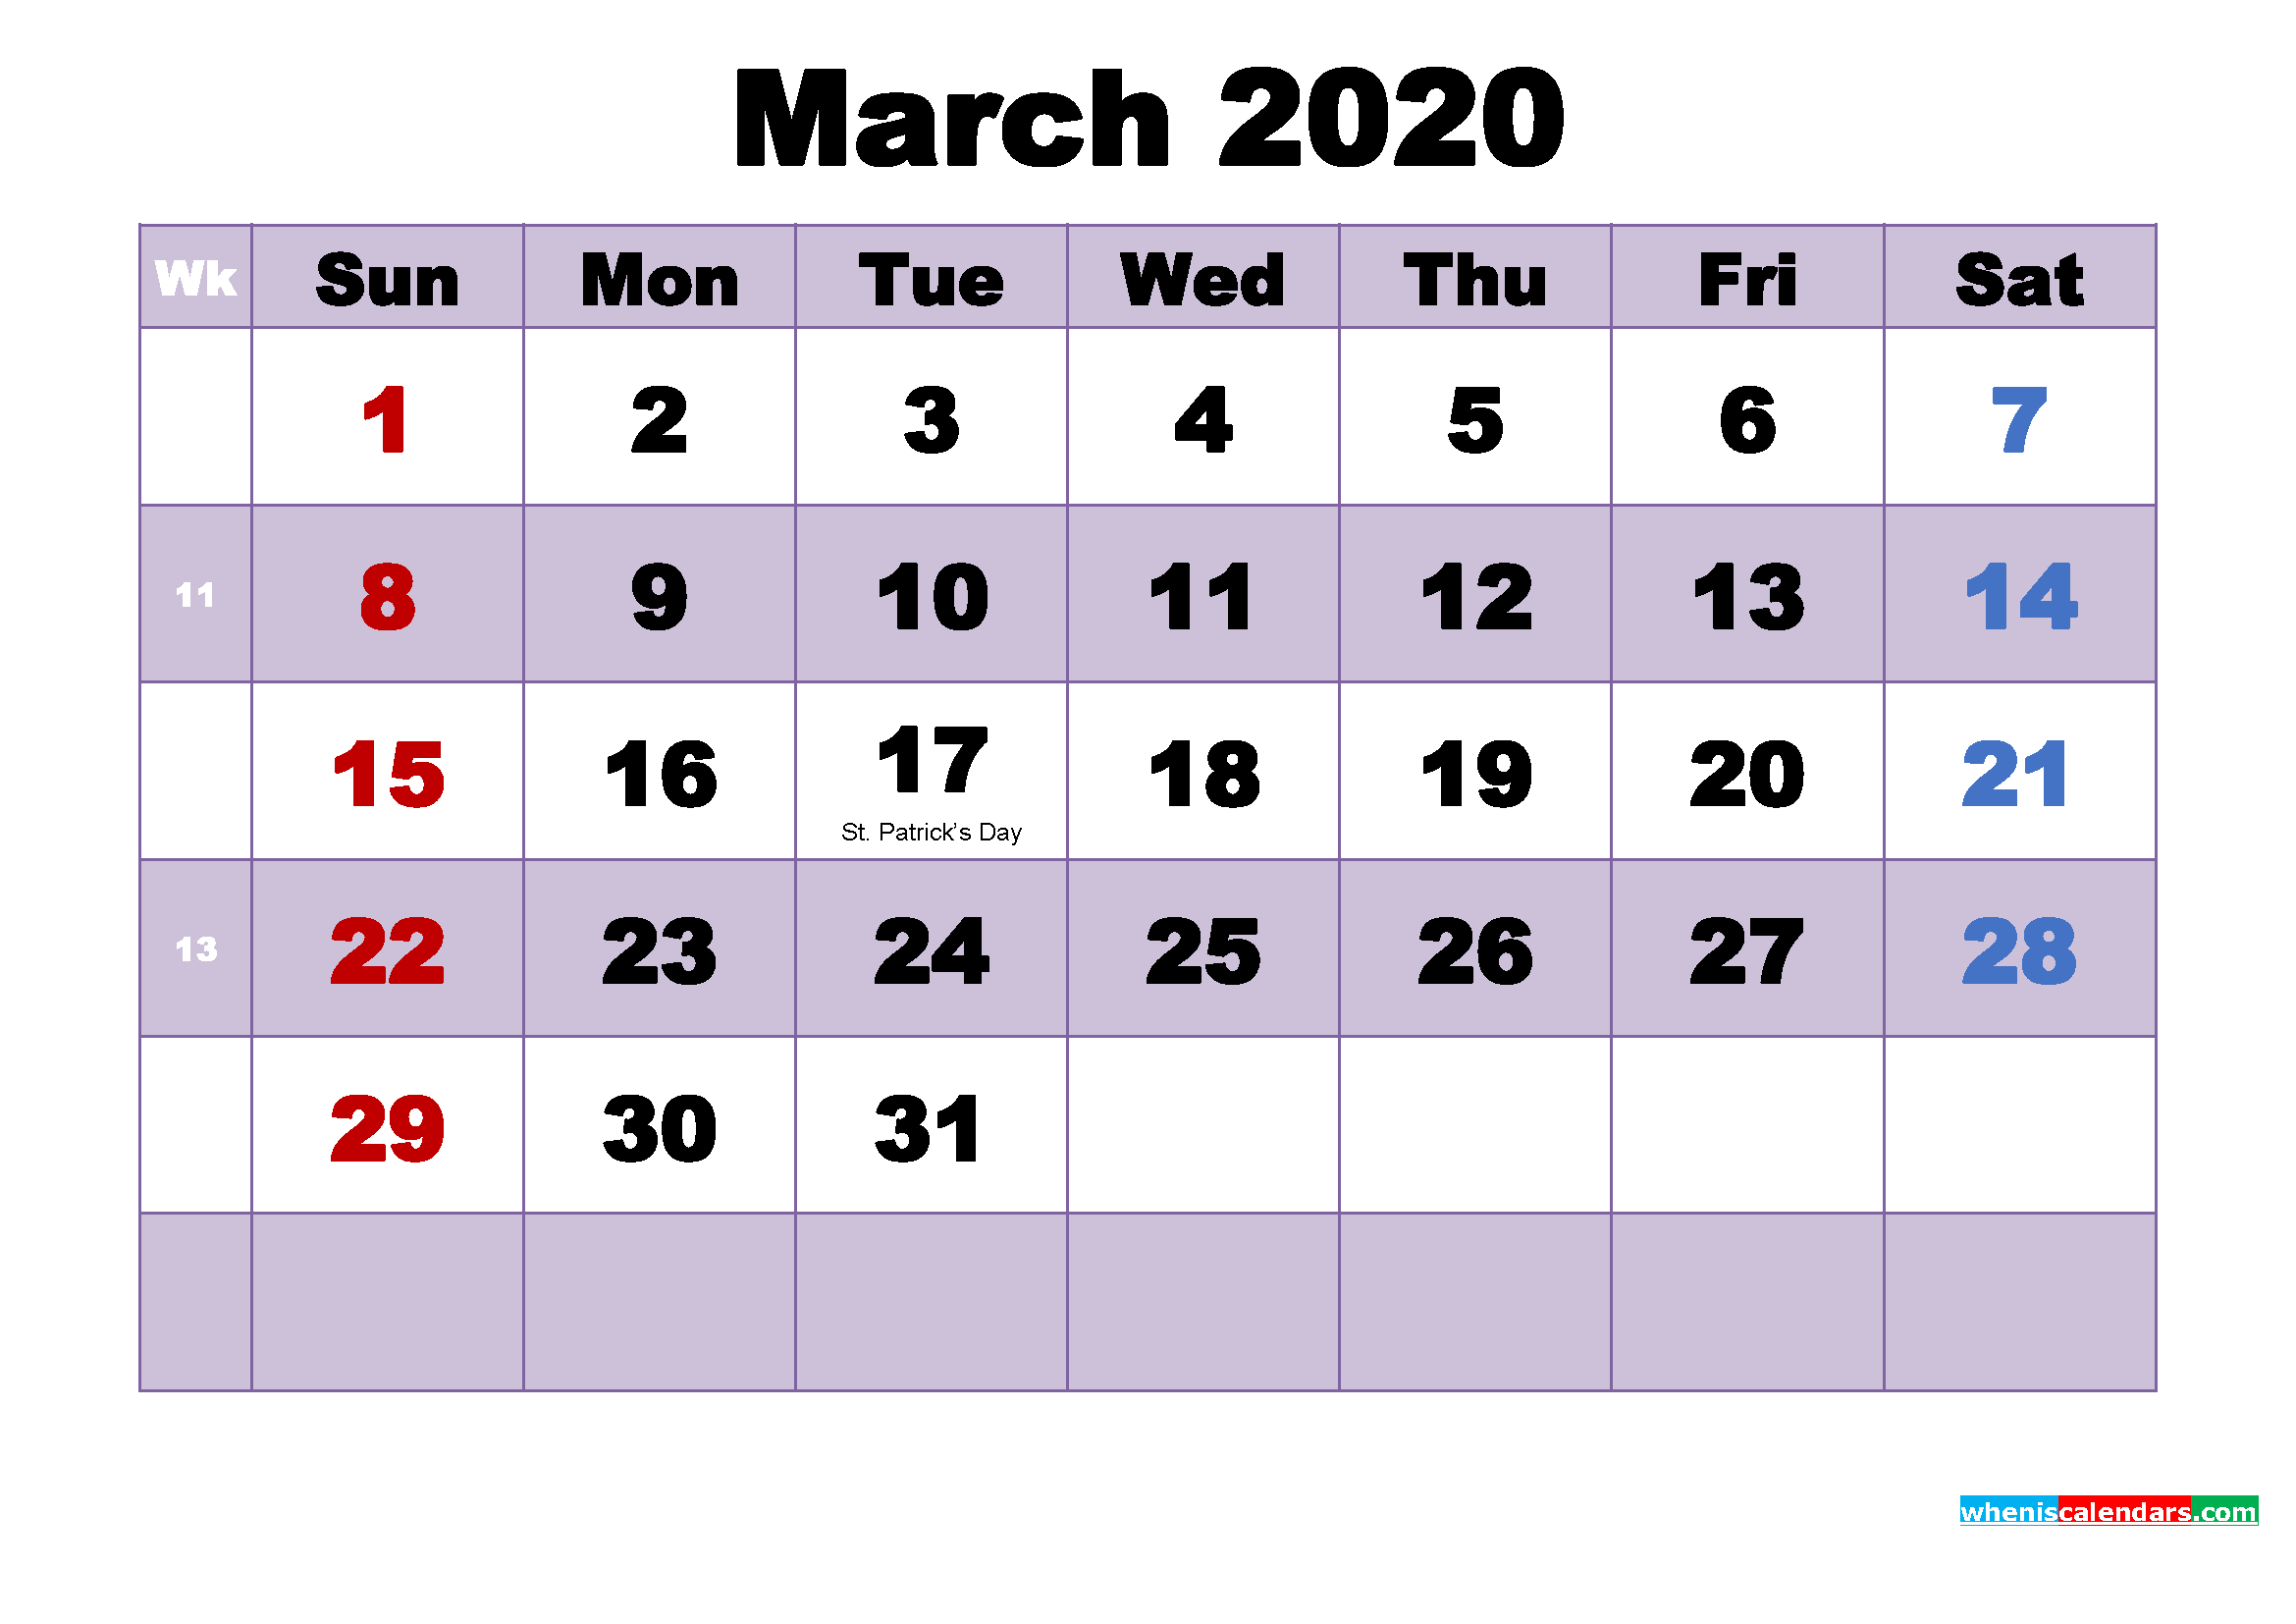 March 2020 Calendar Wallpaper Free Download